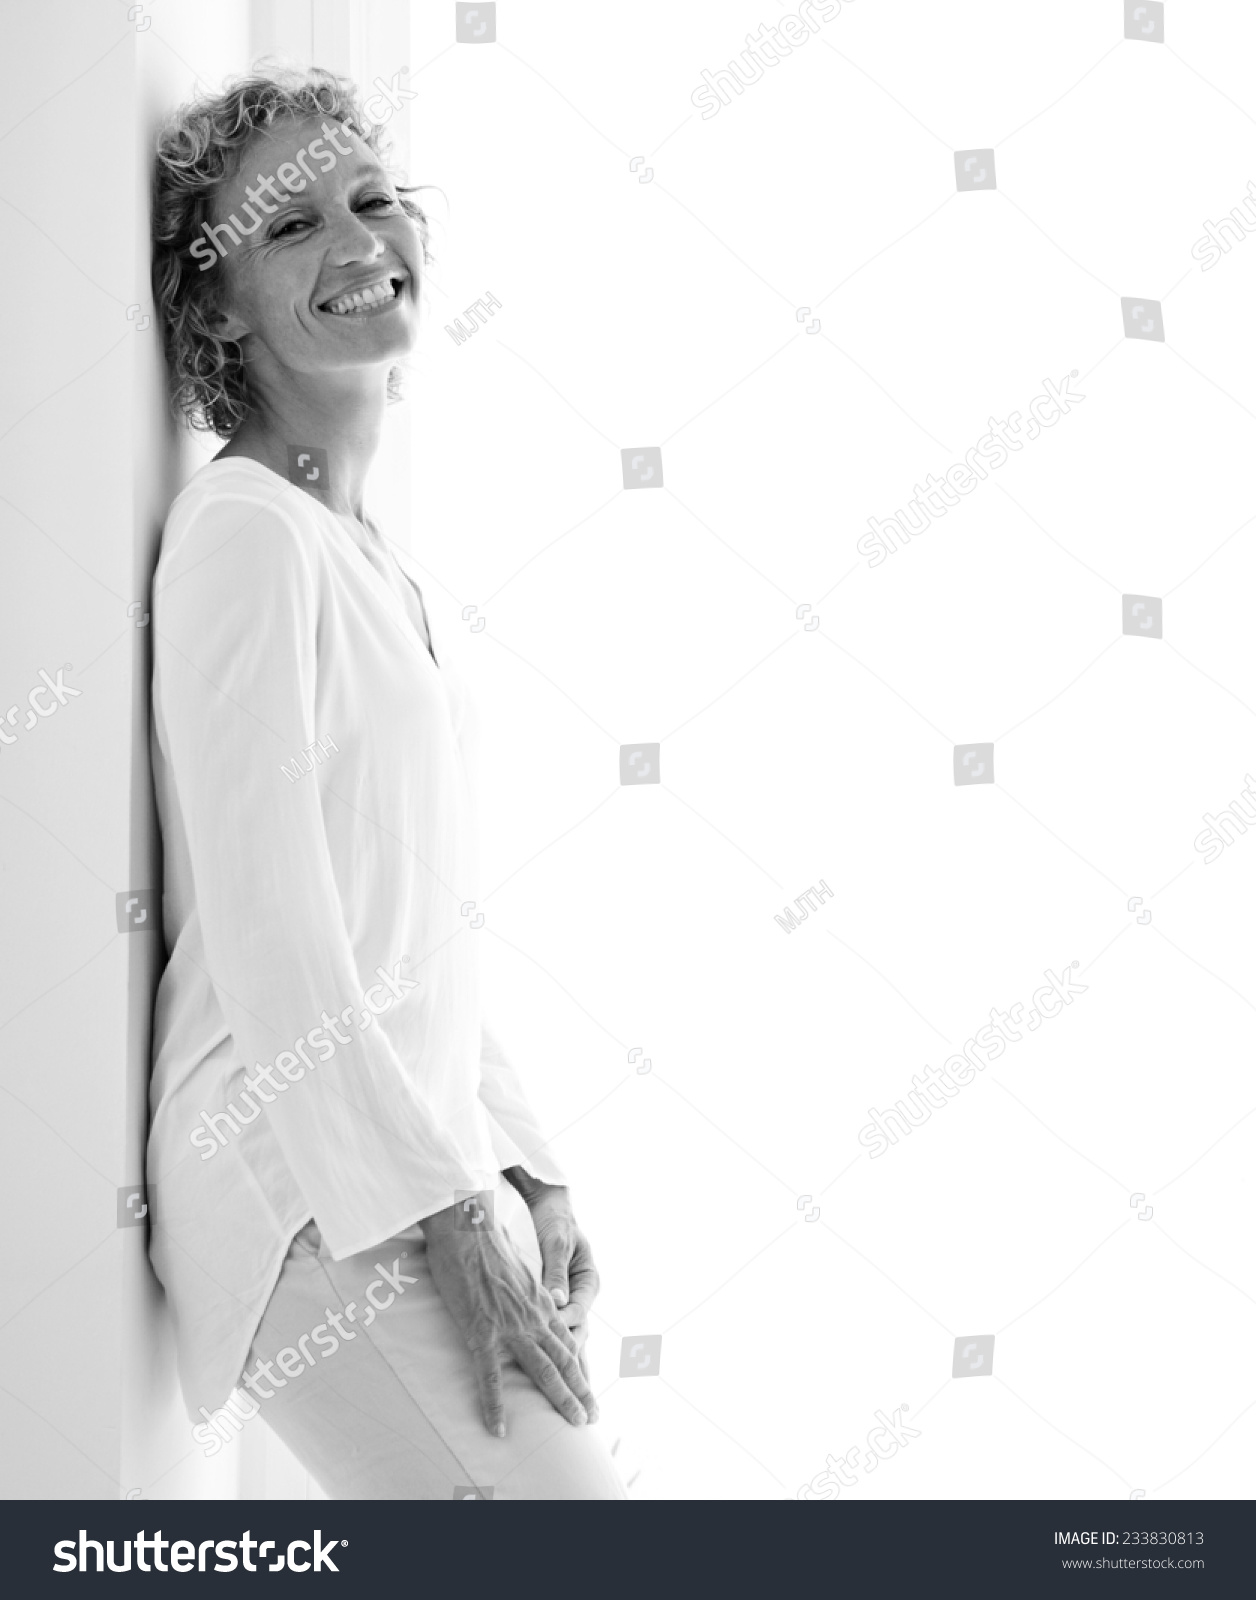 Black and white portrait of a smart professional business woman smiling and leaning on a wall